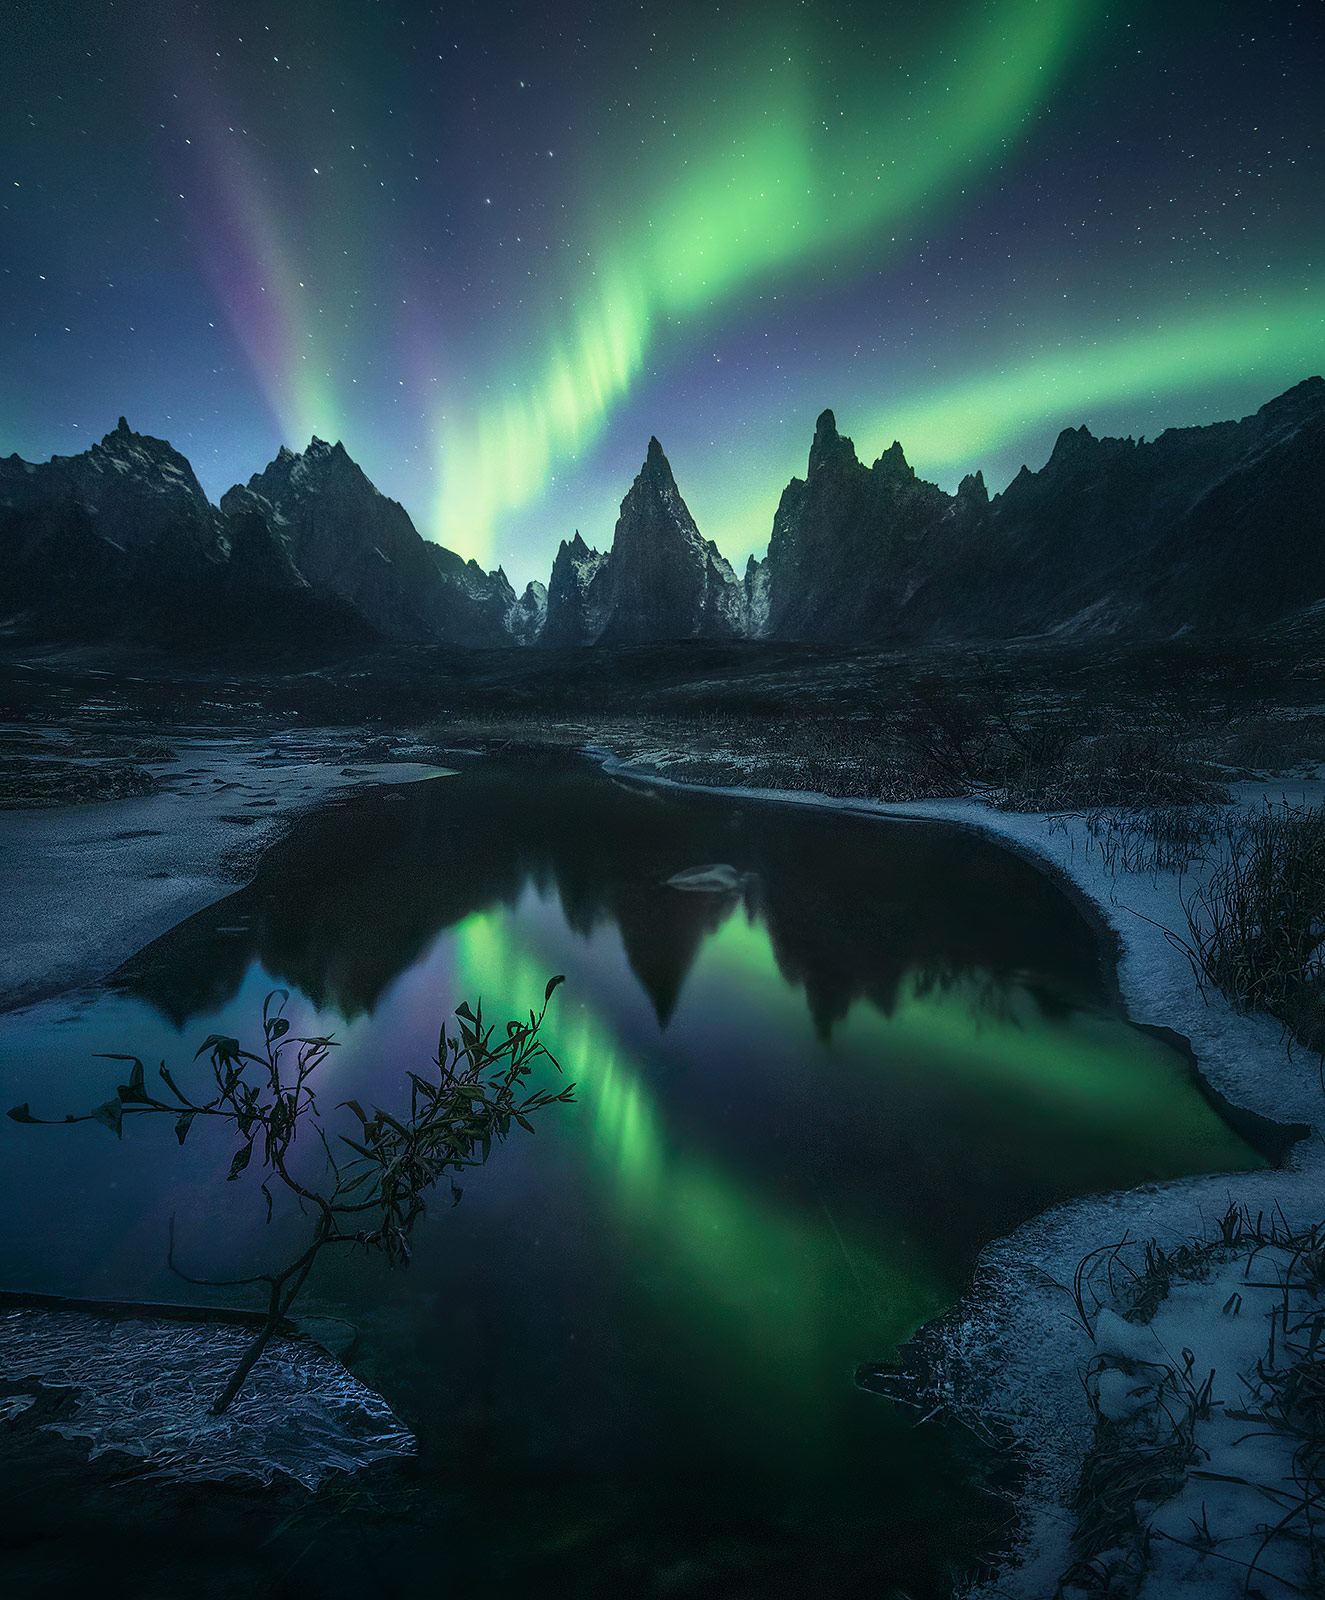 Twilight fades away as the aurora appears over rarely photographed peaks deep in the wilderness of the Yukon.